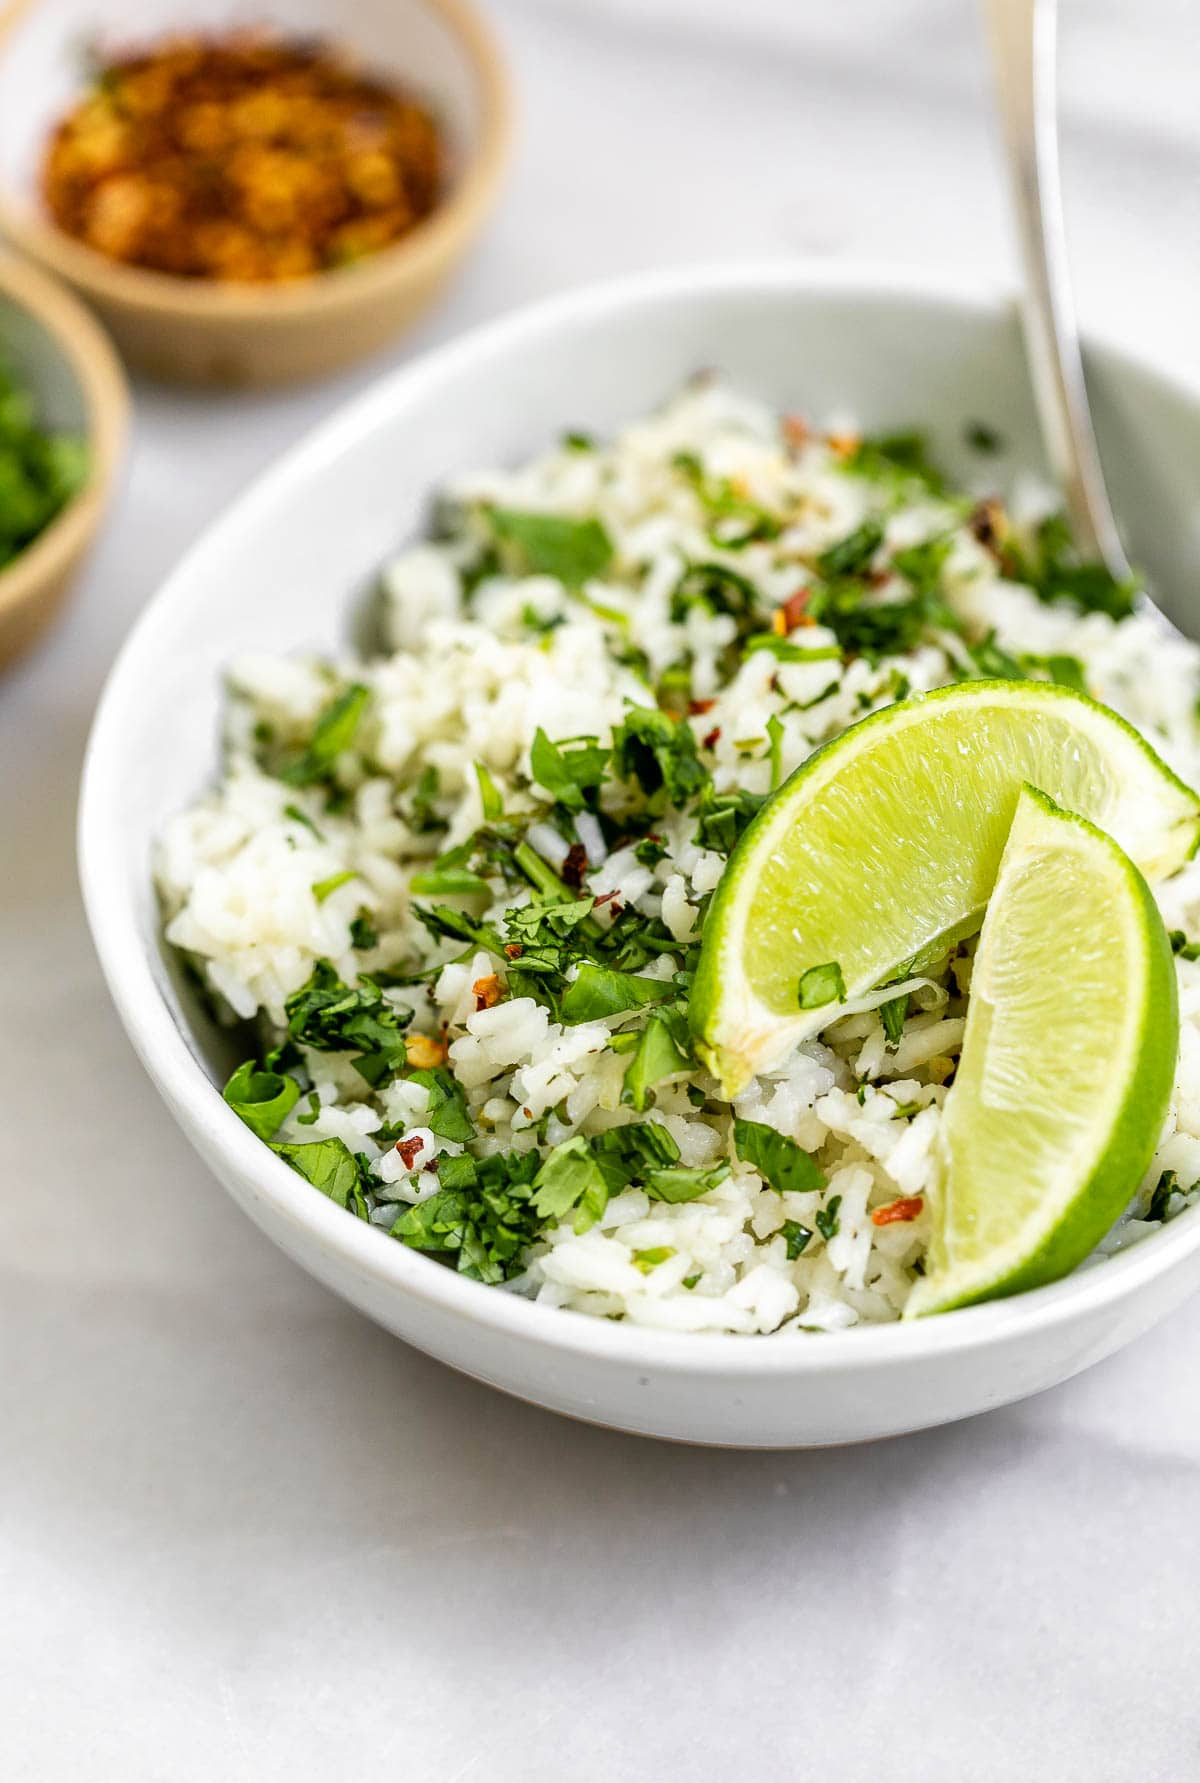 Angled view of the rice with chopped cilantro and lime wedges.